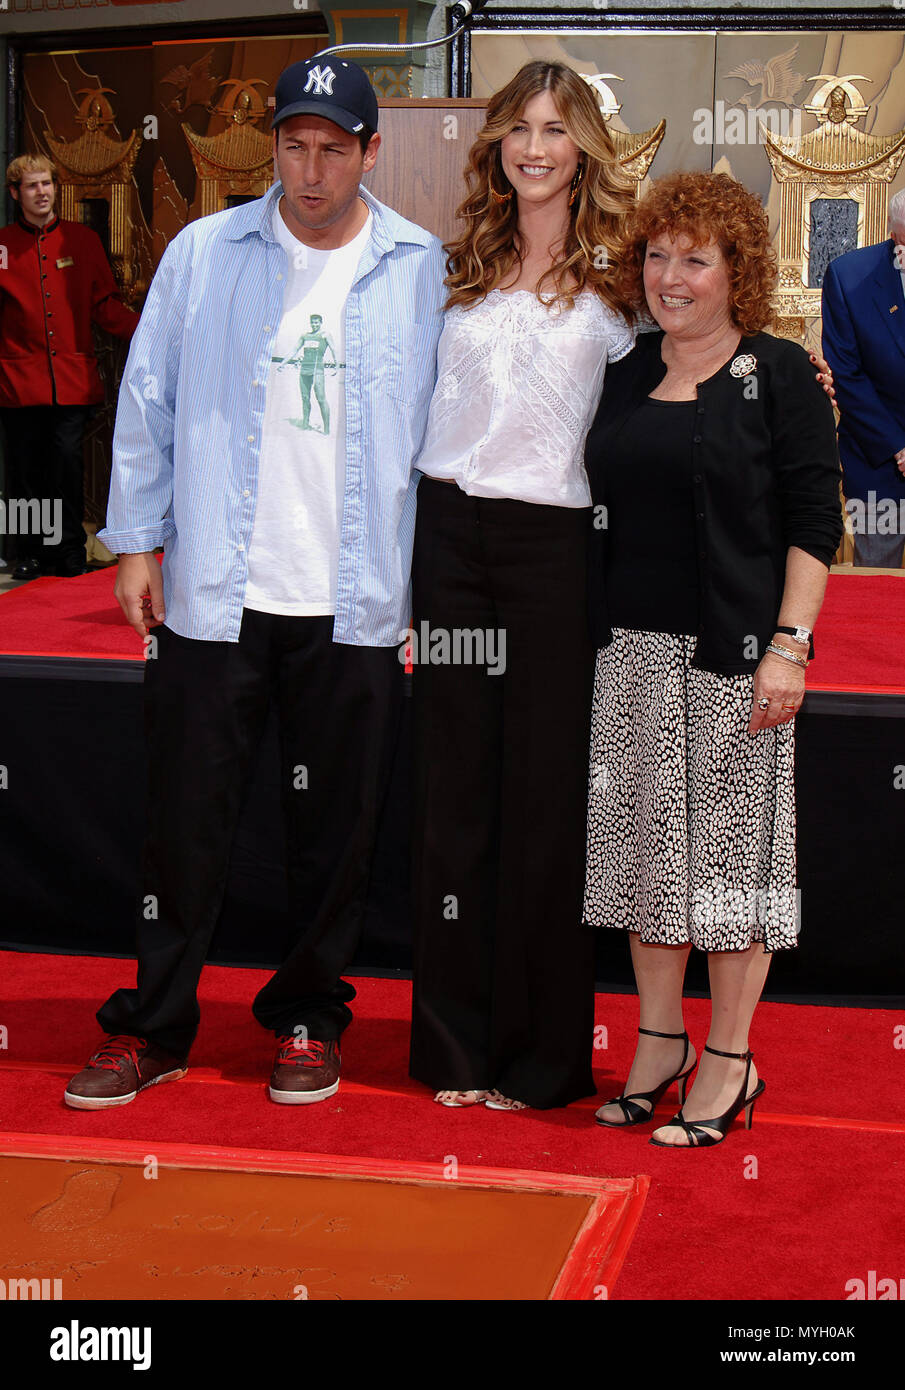 Adam Sandler with his wife jacqui and his mom at the Hands